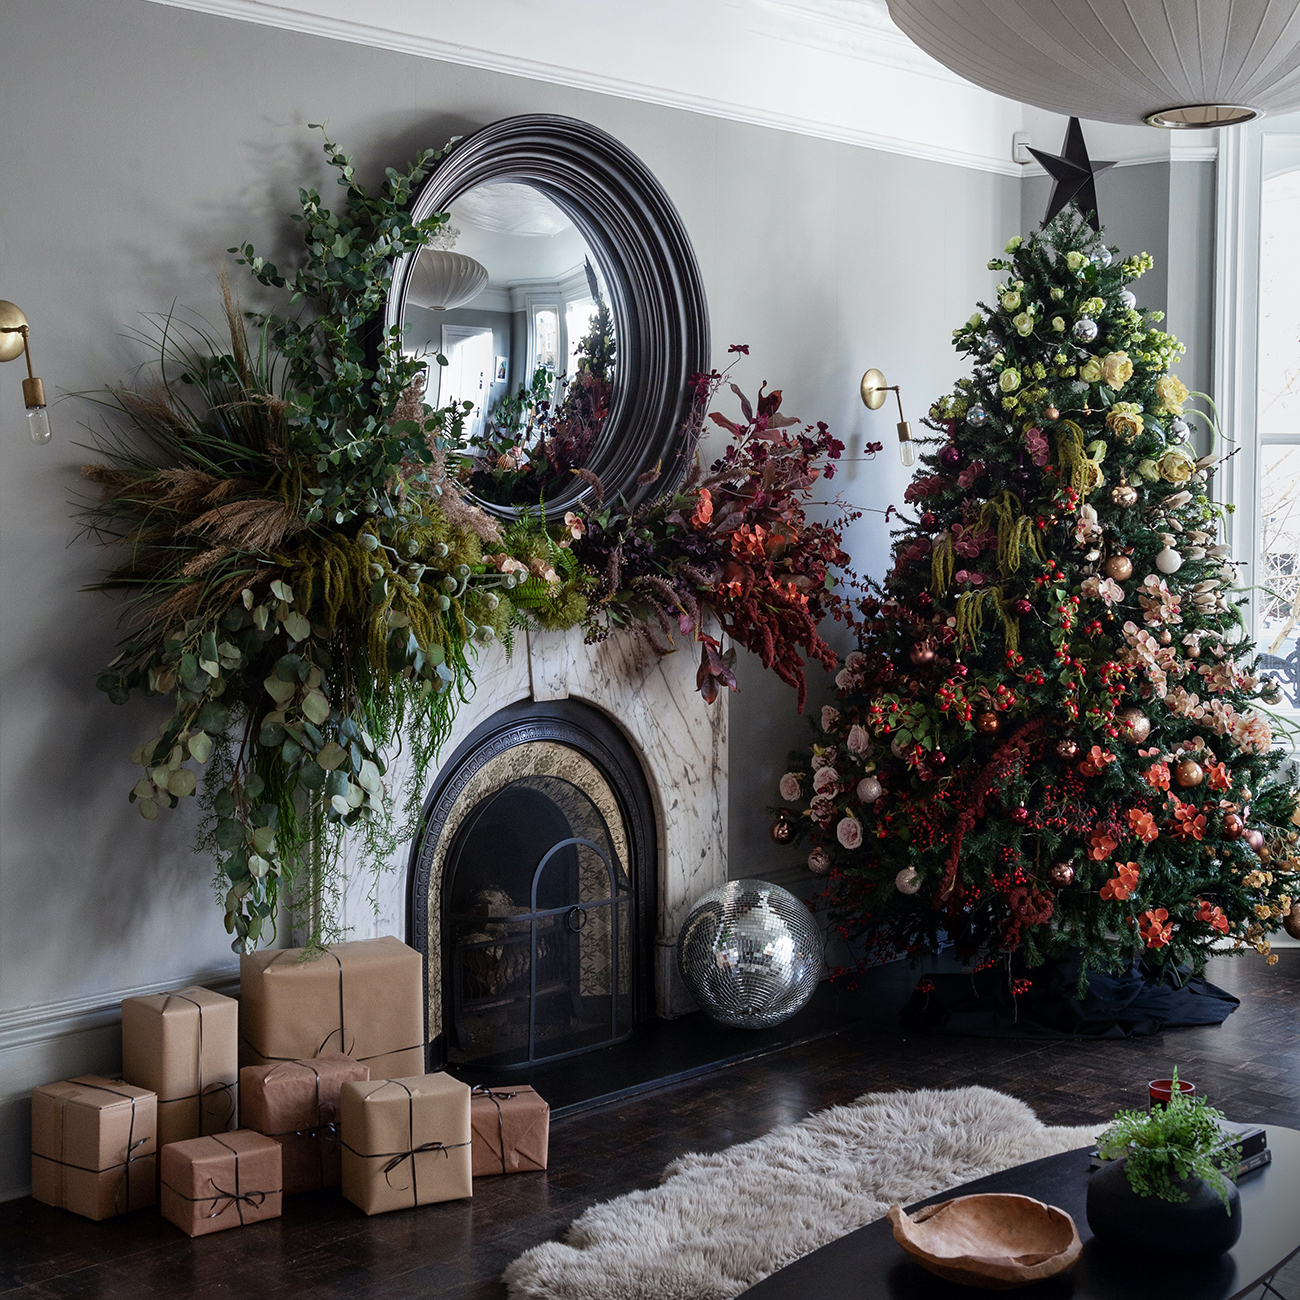 You Have To See These Christmas Trees Decorated With Dried Flowers A christmas tree is a decorated tree, usually an evergreen conifer such as spruce, pine, or fir or an all photos are checked for quality, so you get only beautiful desktop wallpapers. christmas trees decorated